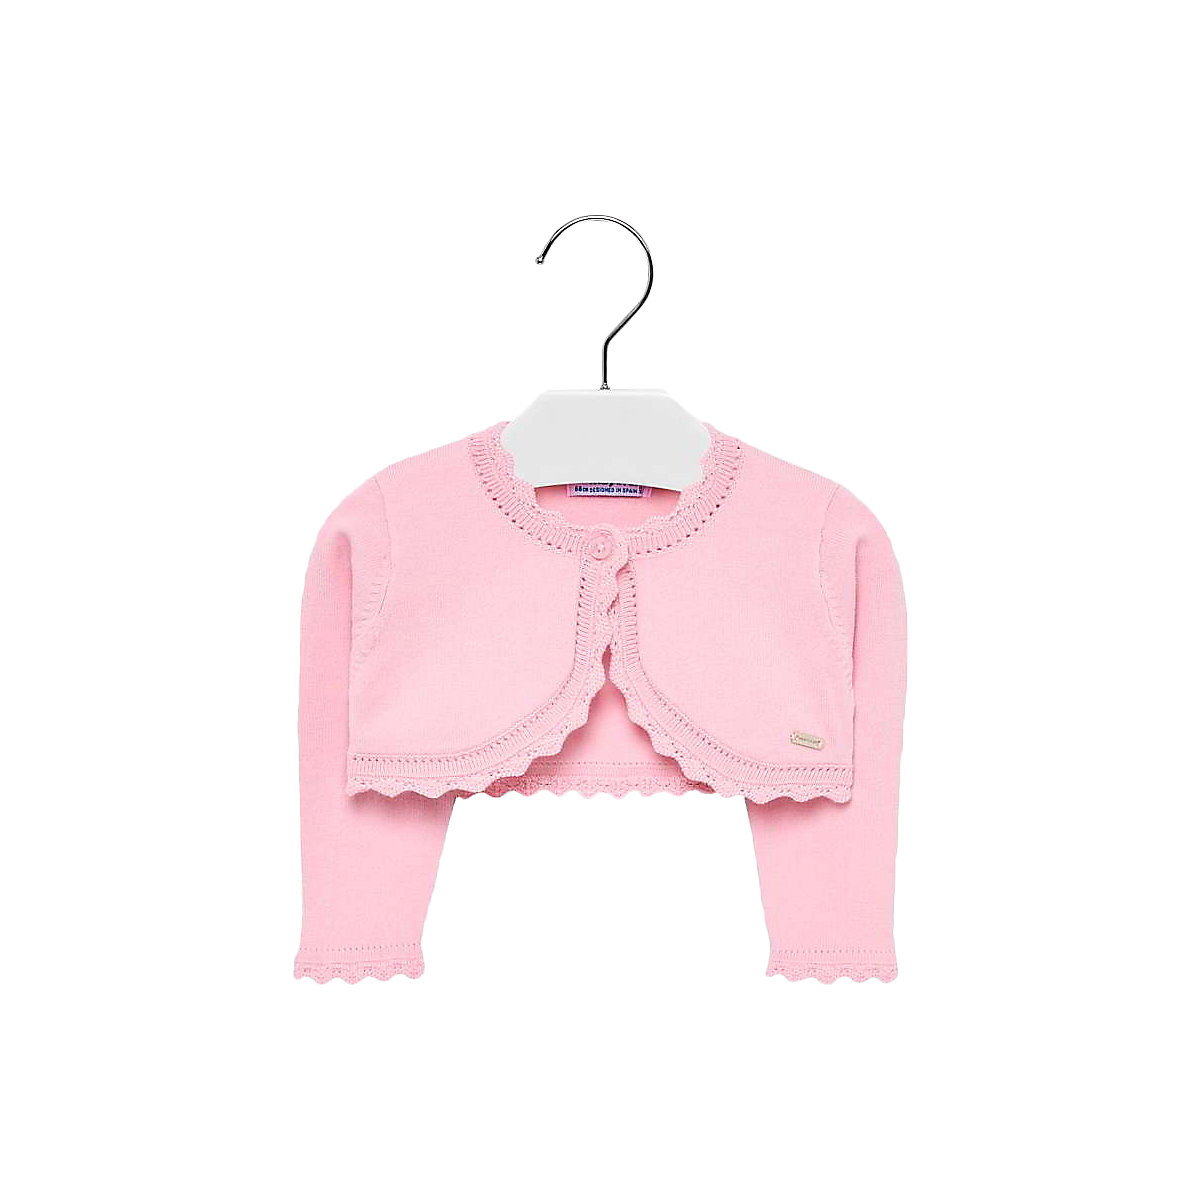 MAYORAL Suits & Blazers 10691241 Girls bolero Jacket coat cardigan shirt Blazers Casual Pink Cotton coat color pink